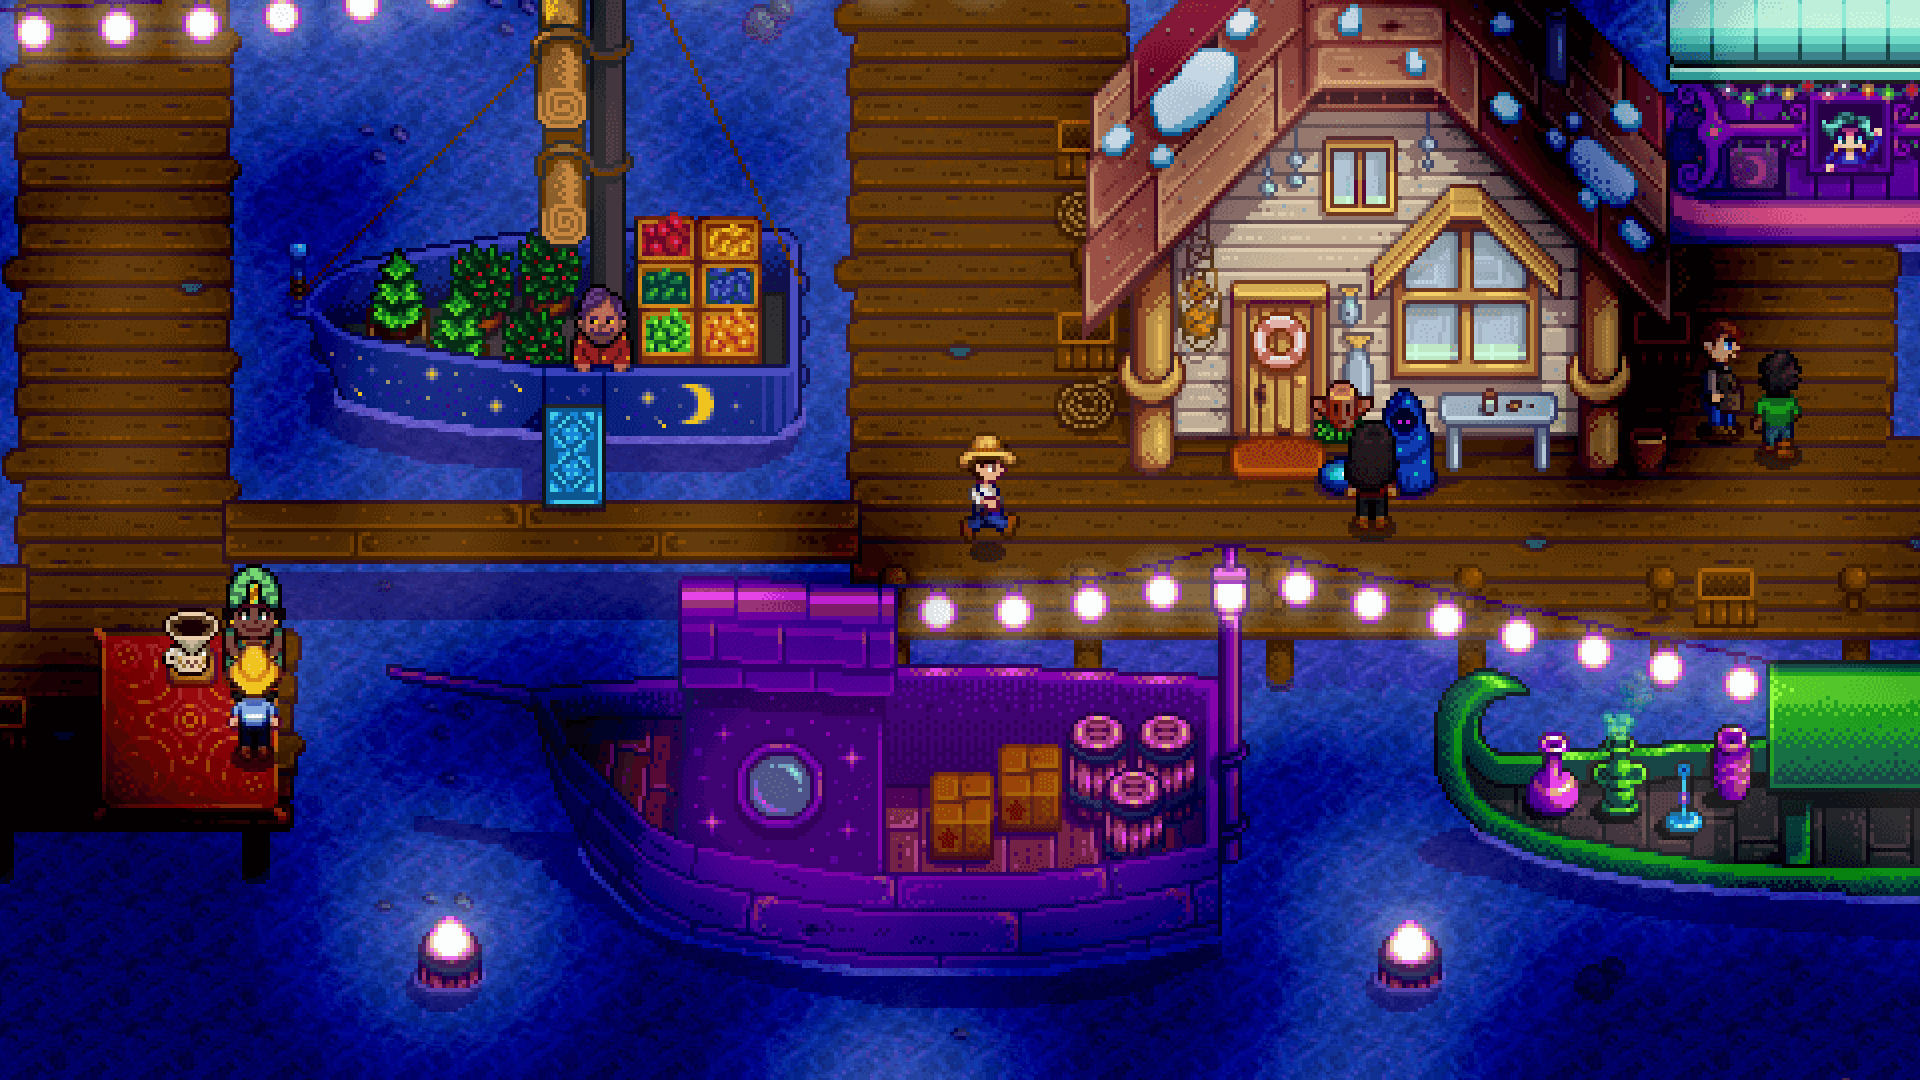 Stardew Valley just hit Year 3 and the Android version is